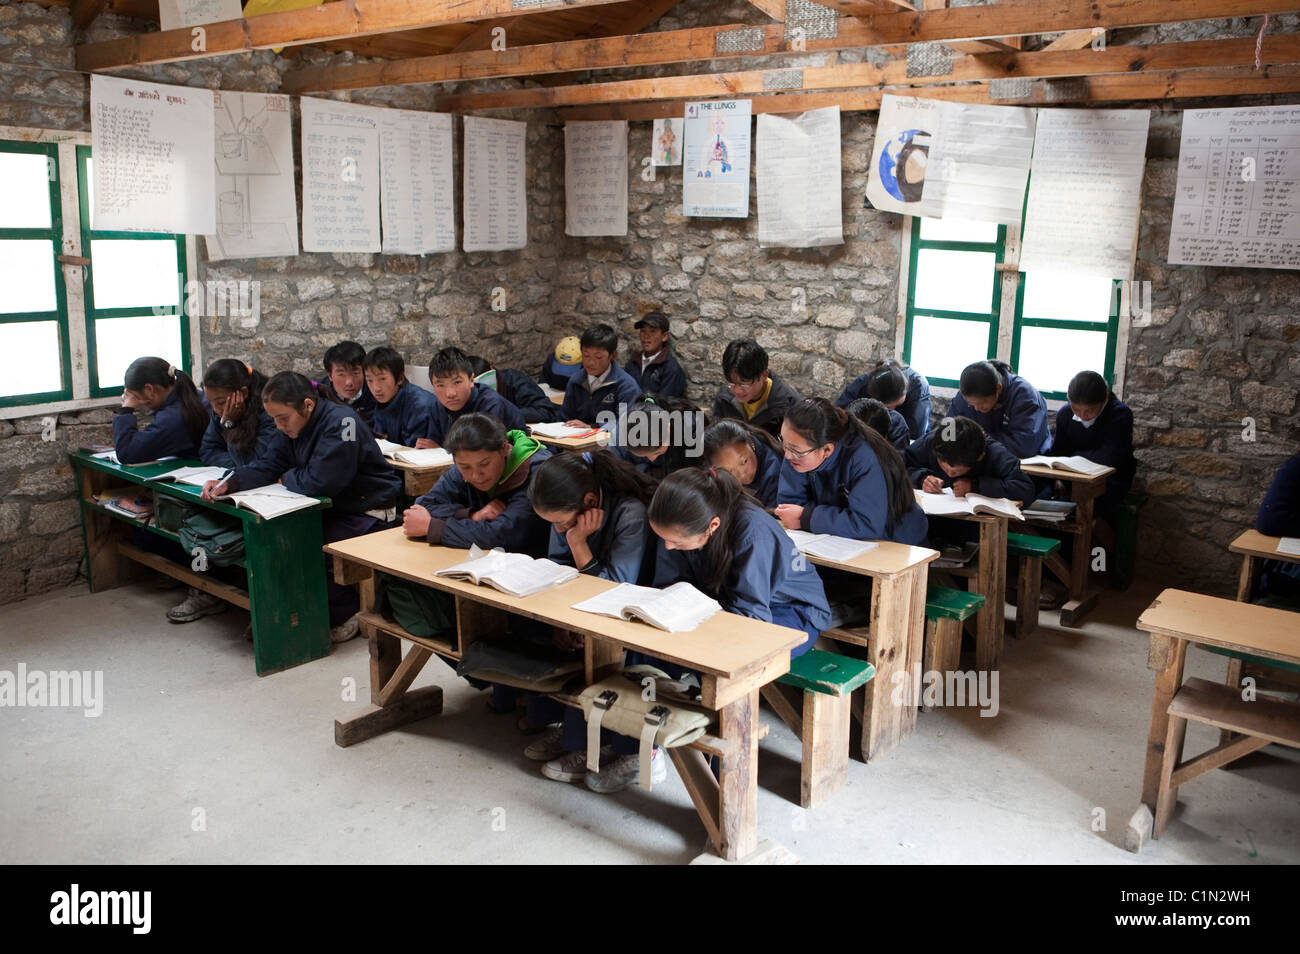 Classoom of schoolchildren in Khumjung in the Khumbu region of the Himalayas in Nepal - Stock Image